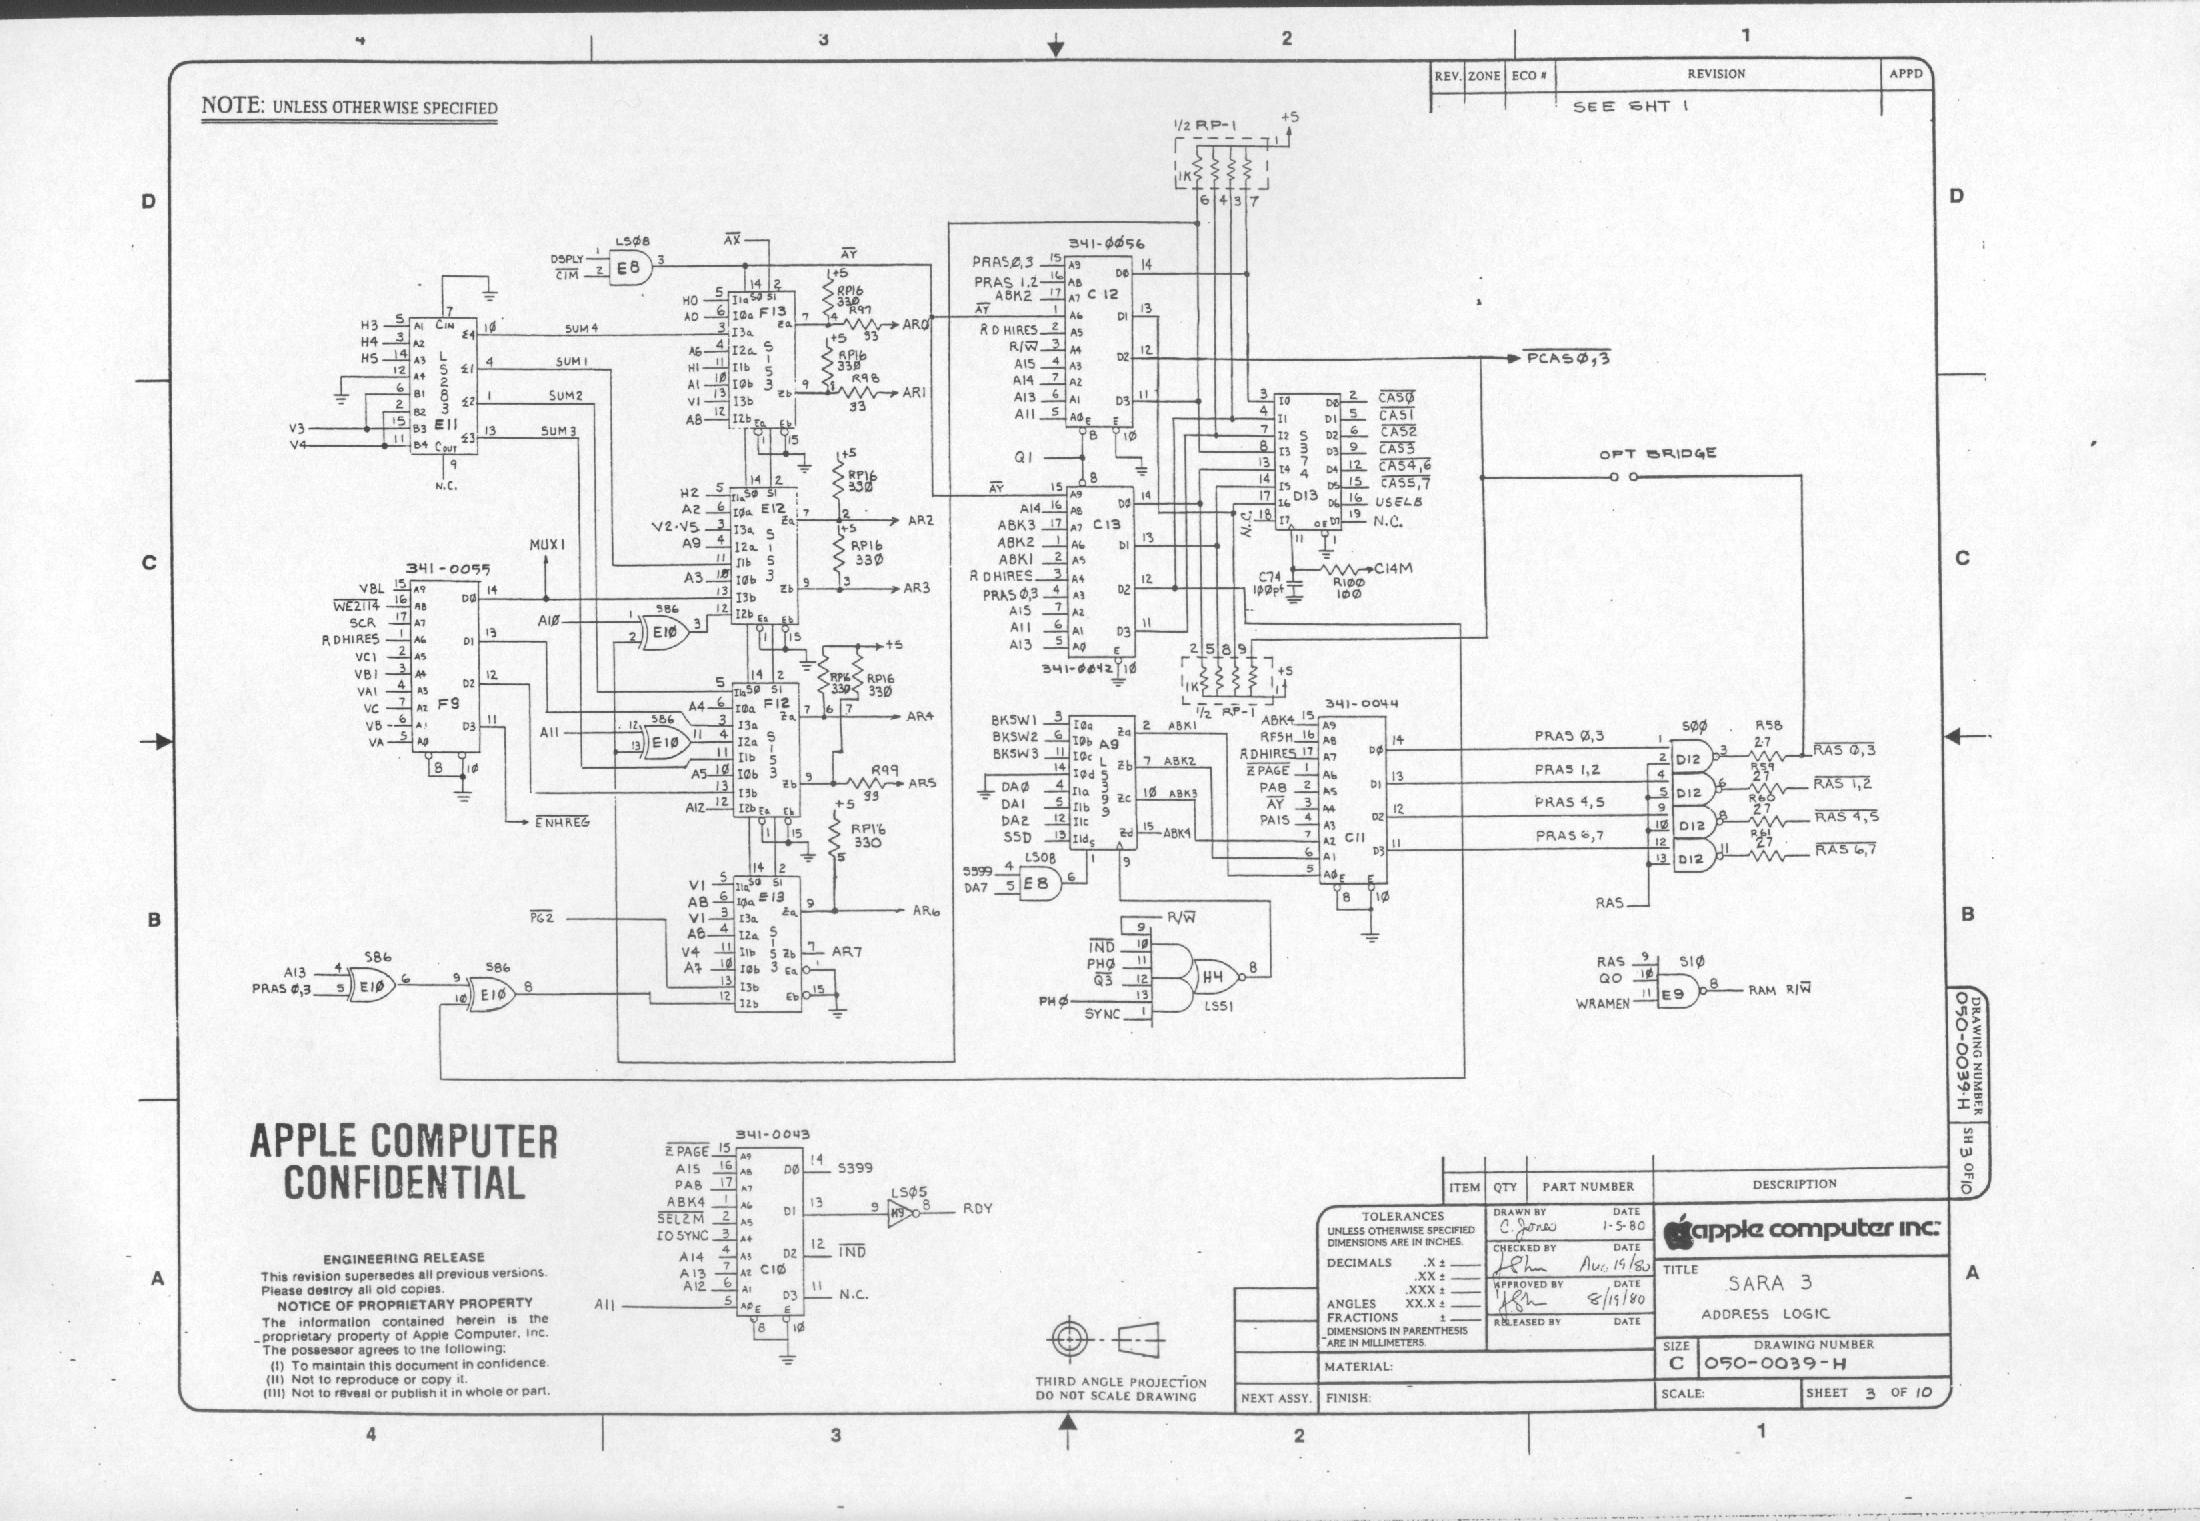 Apple Wiring Schematic Auto Electrical Diagram Circuit Xkcd 20 Images